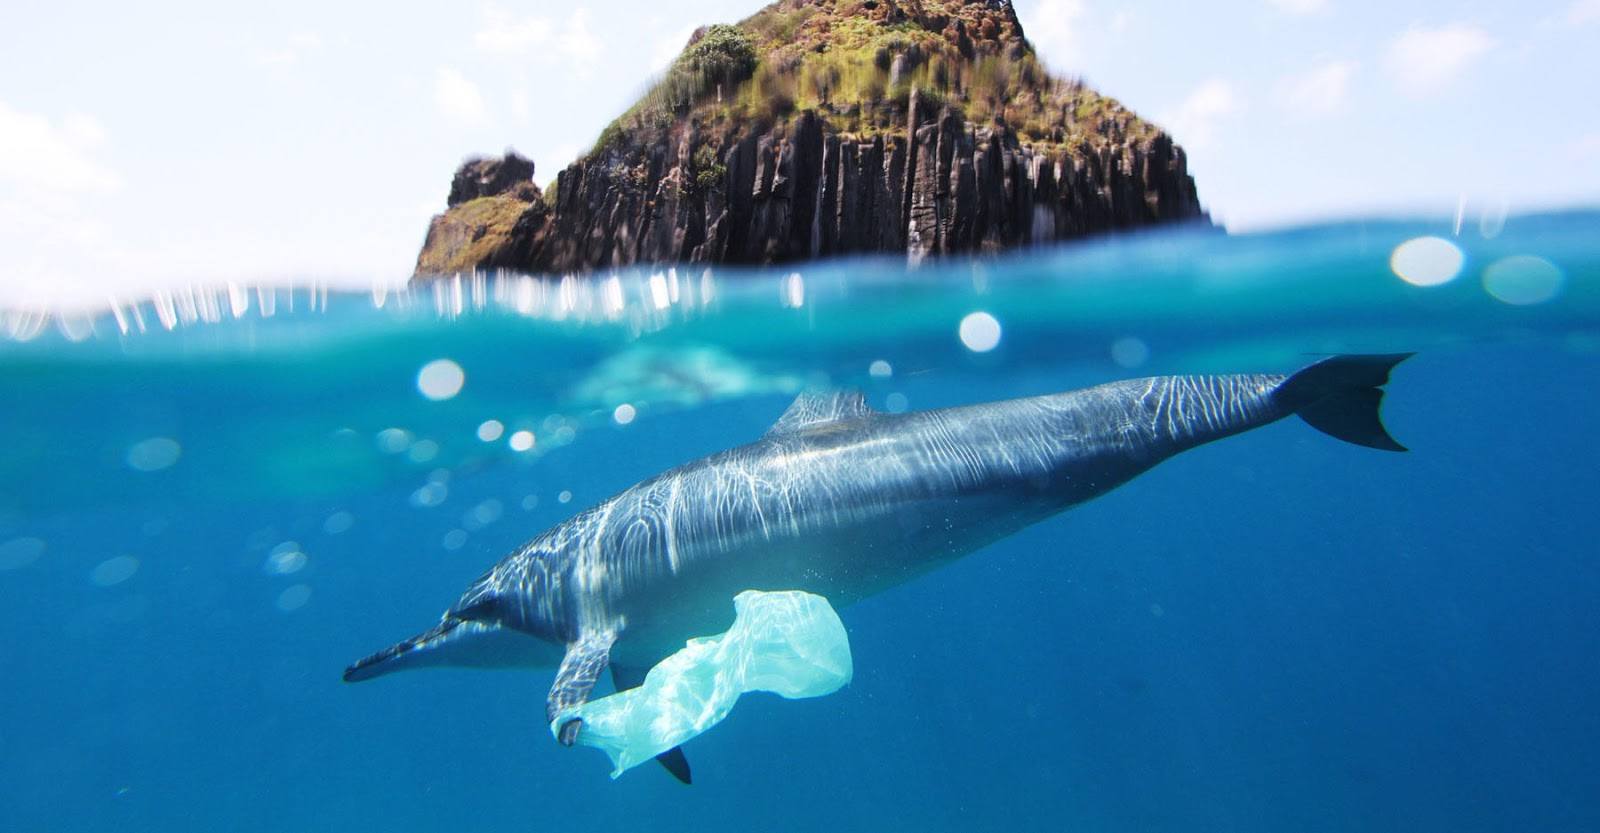 There Could Be More Plastic Than Fish in the Ocean